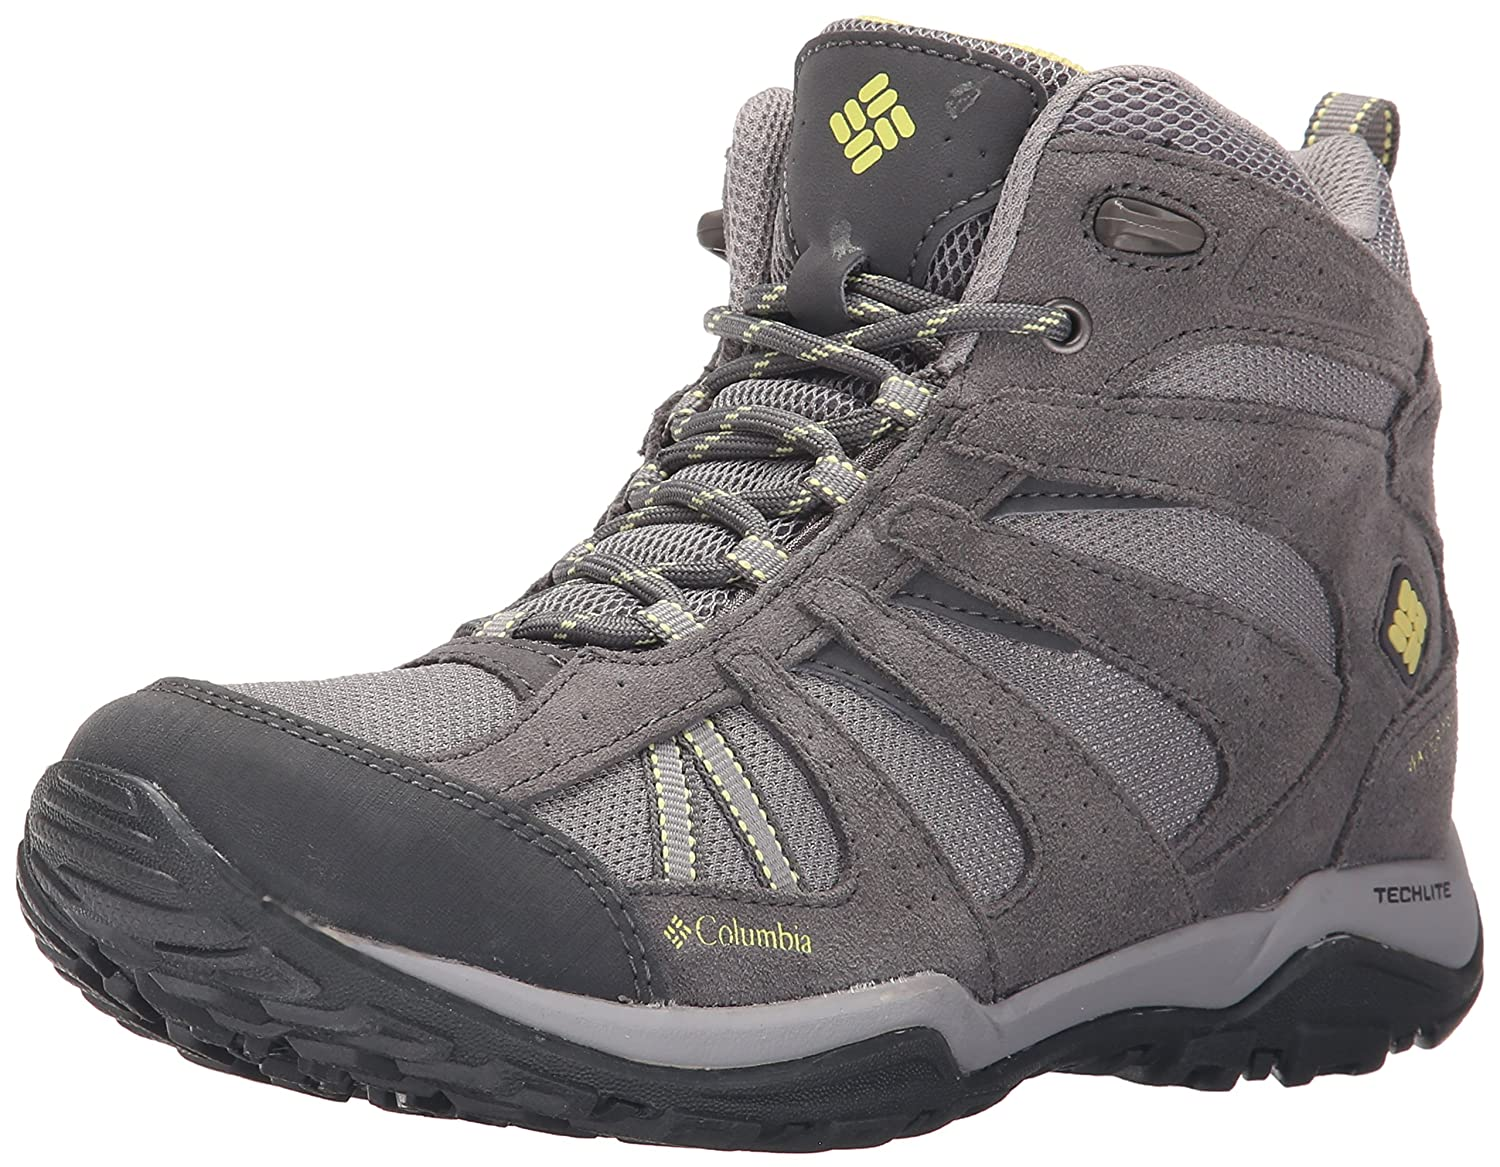 Columbia Women's Dakota Drifter Mid Waterproof Trail Shoe B01015LIYA 7 B(M) US|Light Grey, Sunnyside